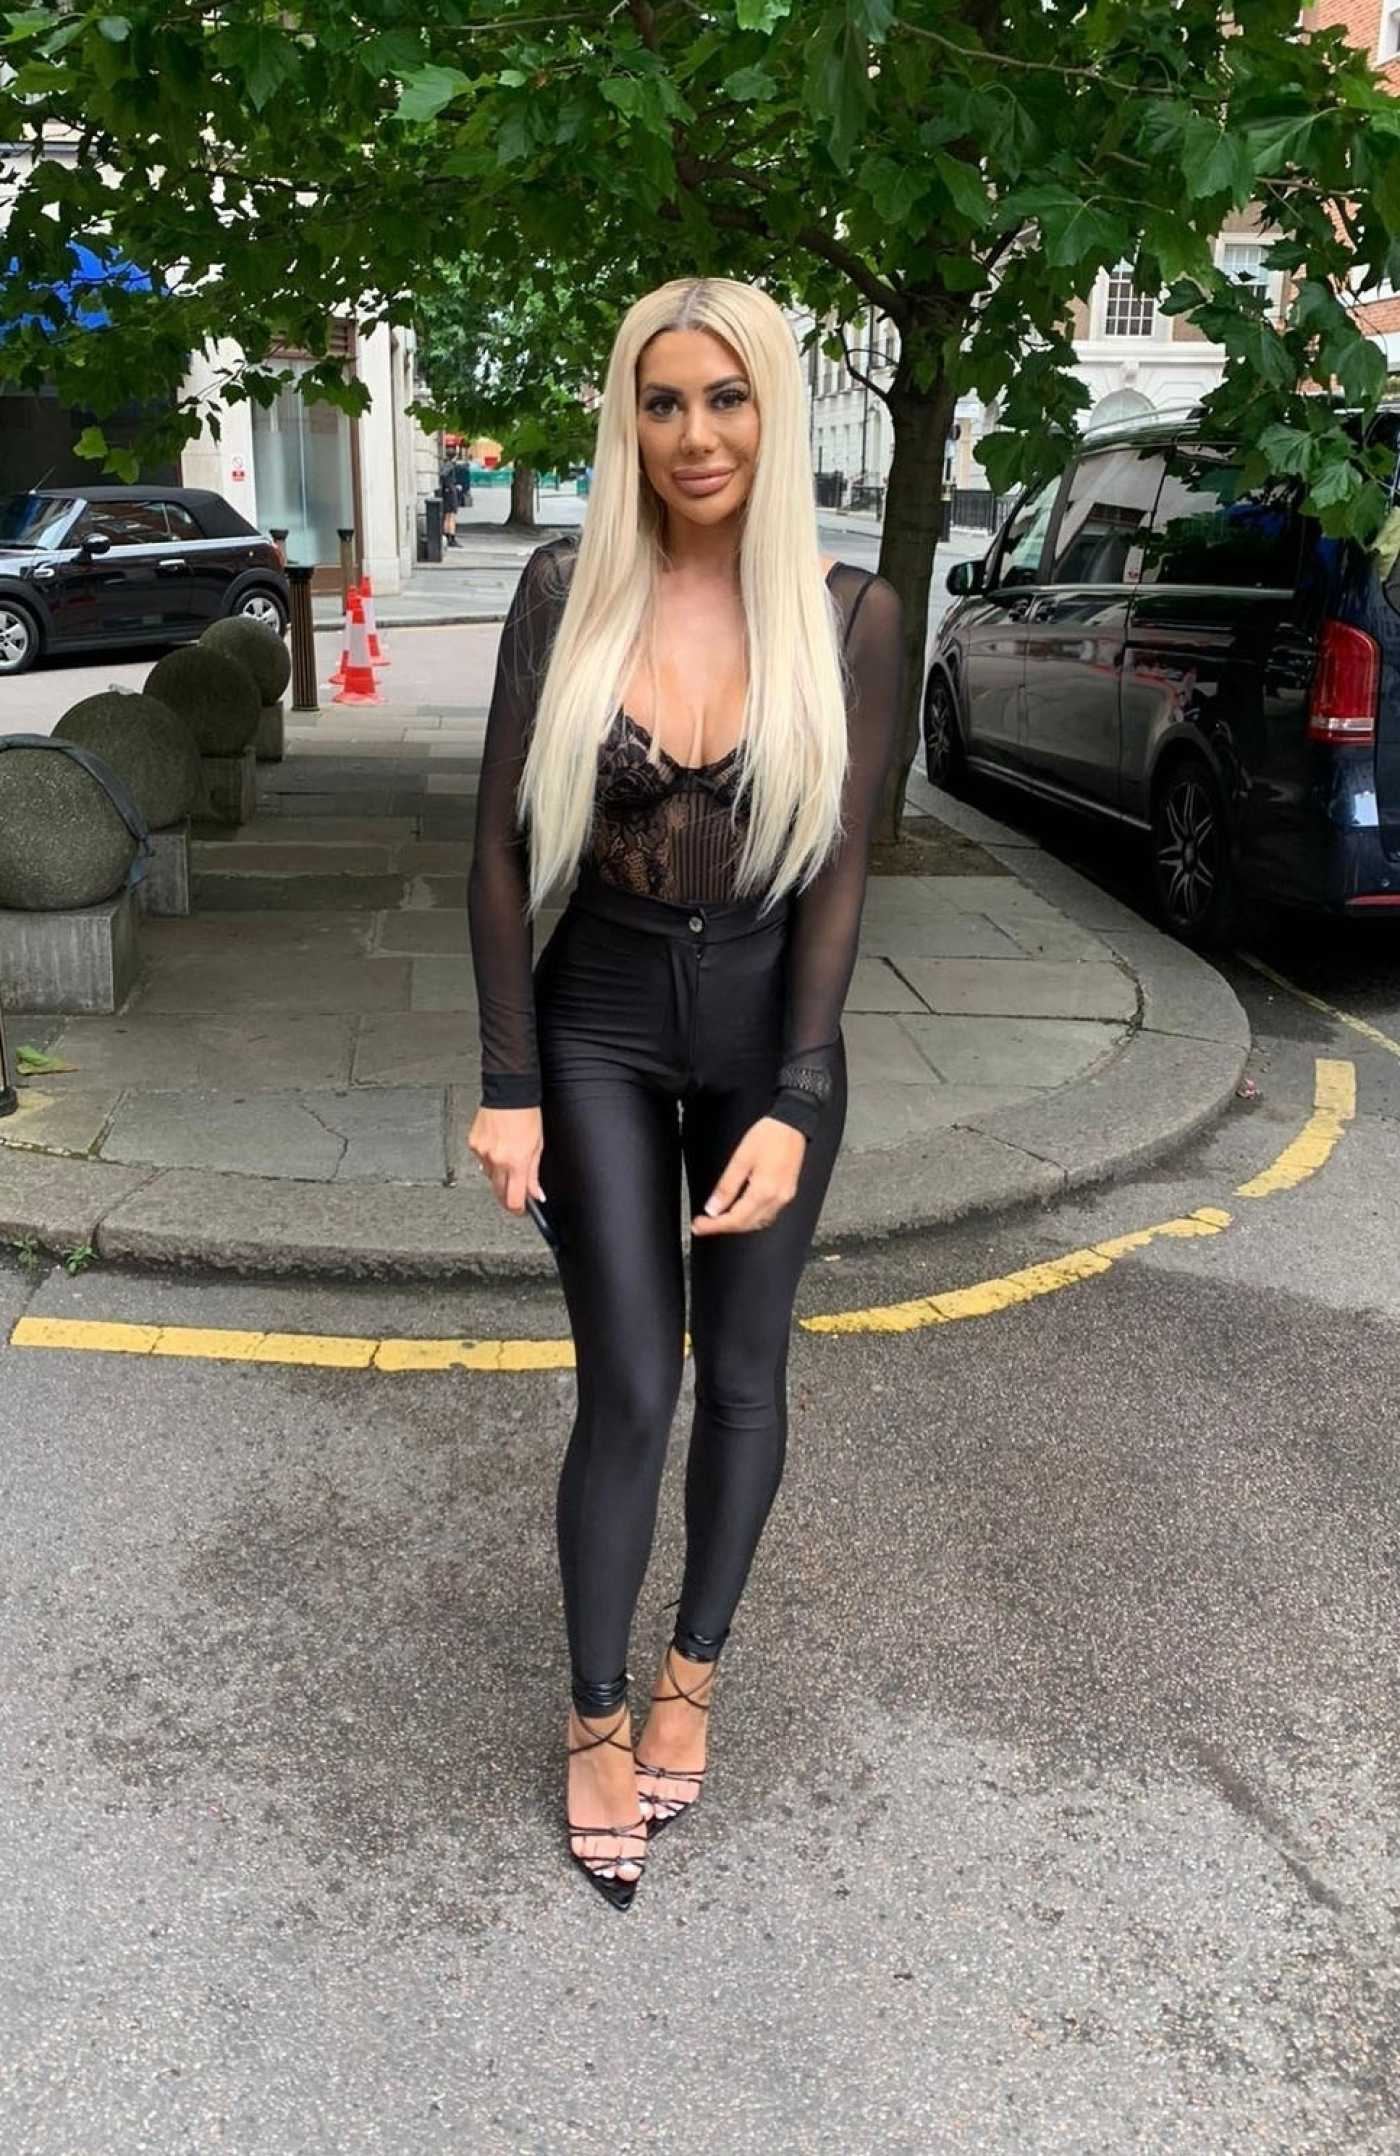 Chloe Ferry in a Black Blouse Was Seen Out in London 07/09/2020